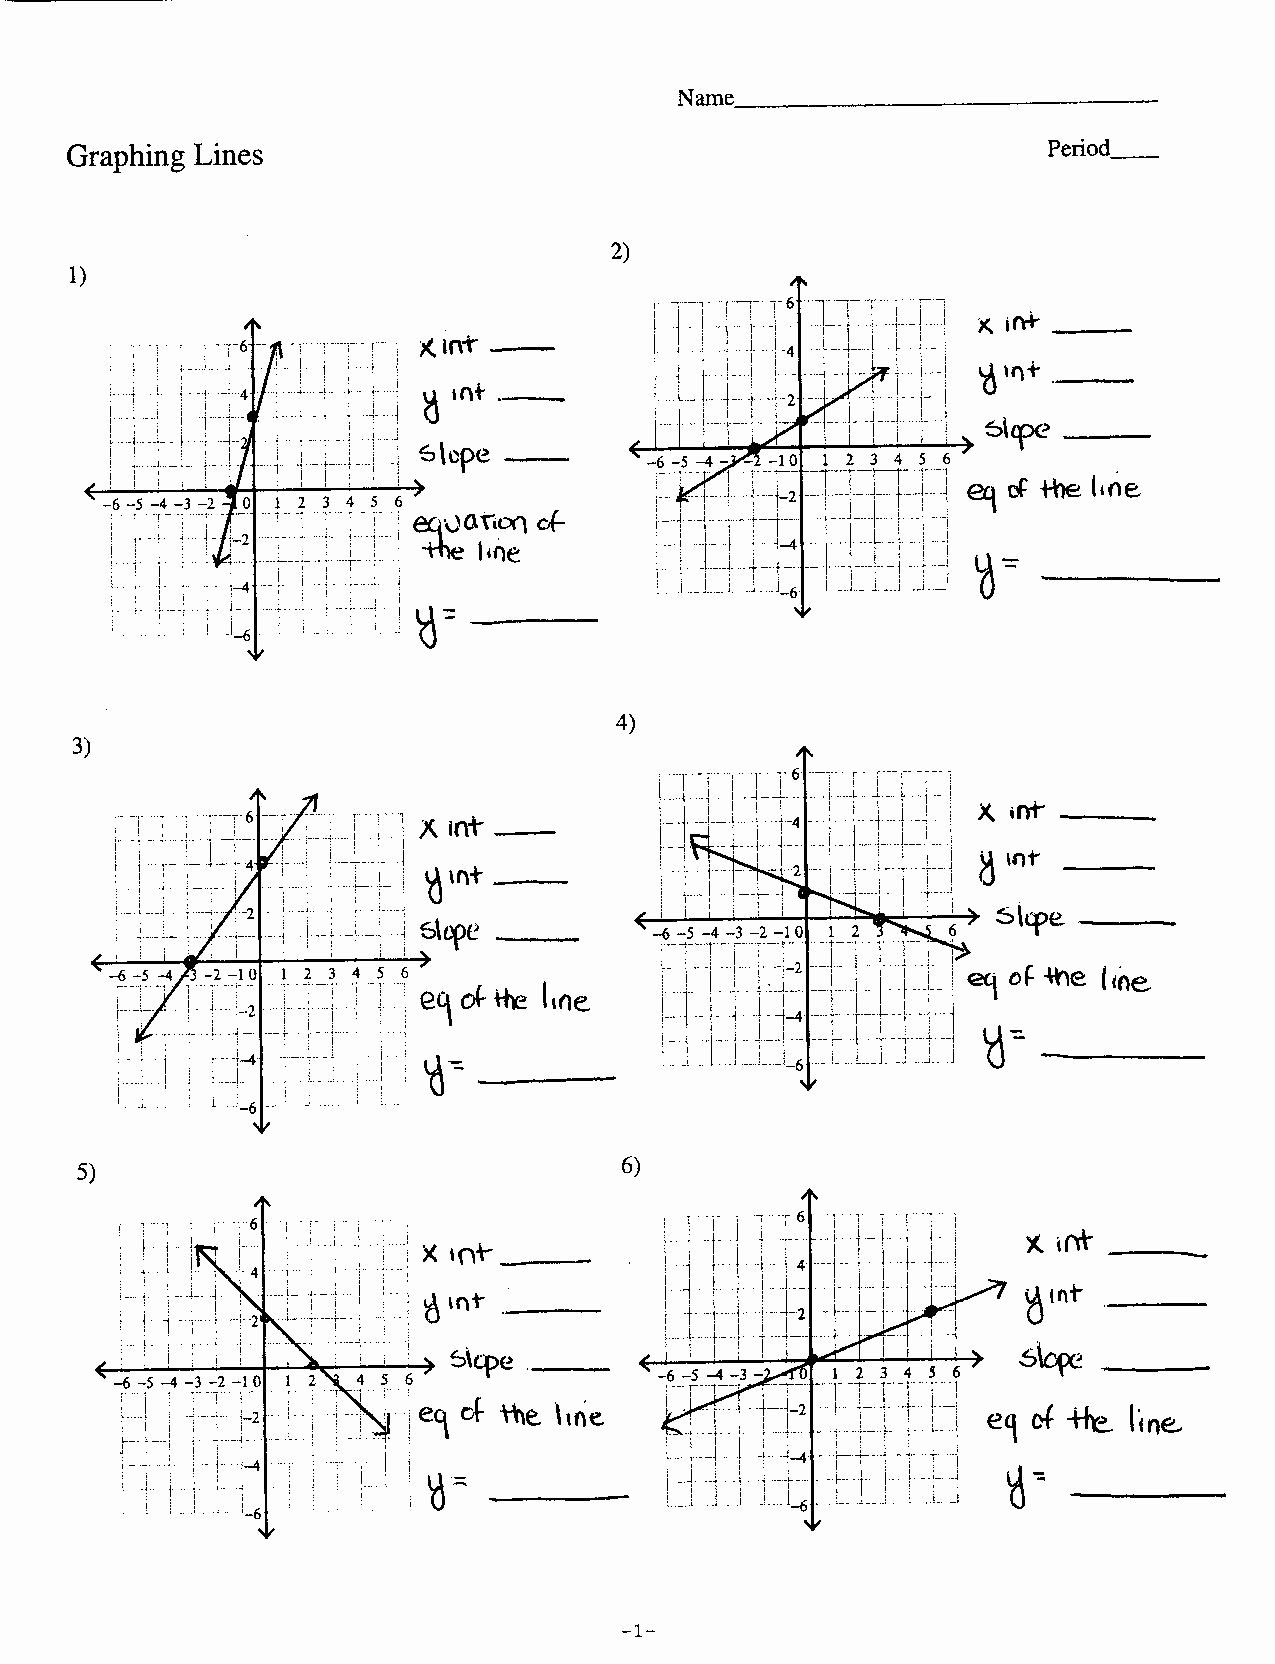 Graphing Linear Inequalities Worksheet Answers Elegant Two Variable Inequalities Essay Writer Plantthesis X Fc2